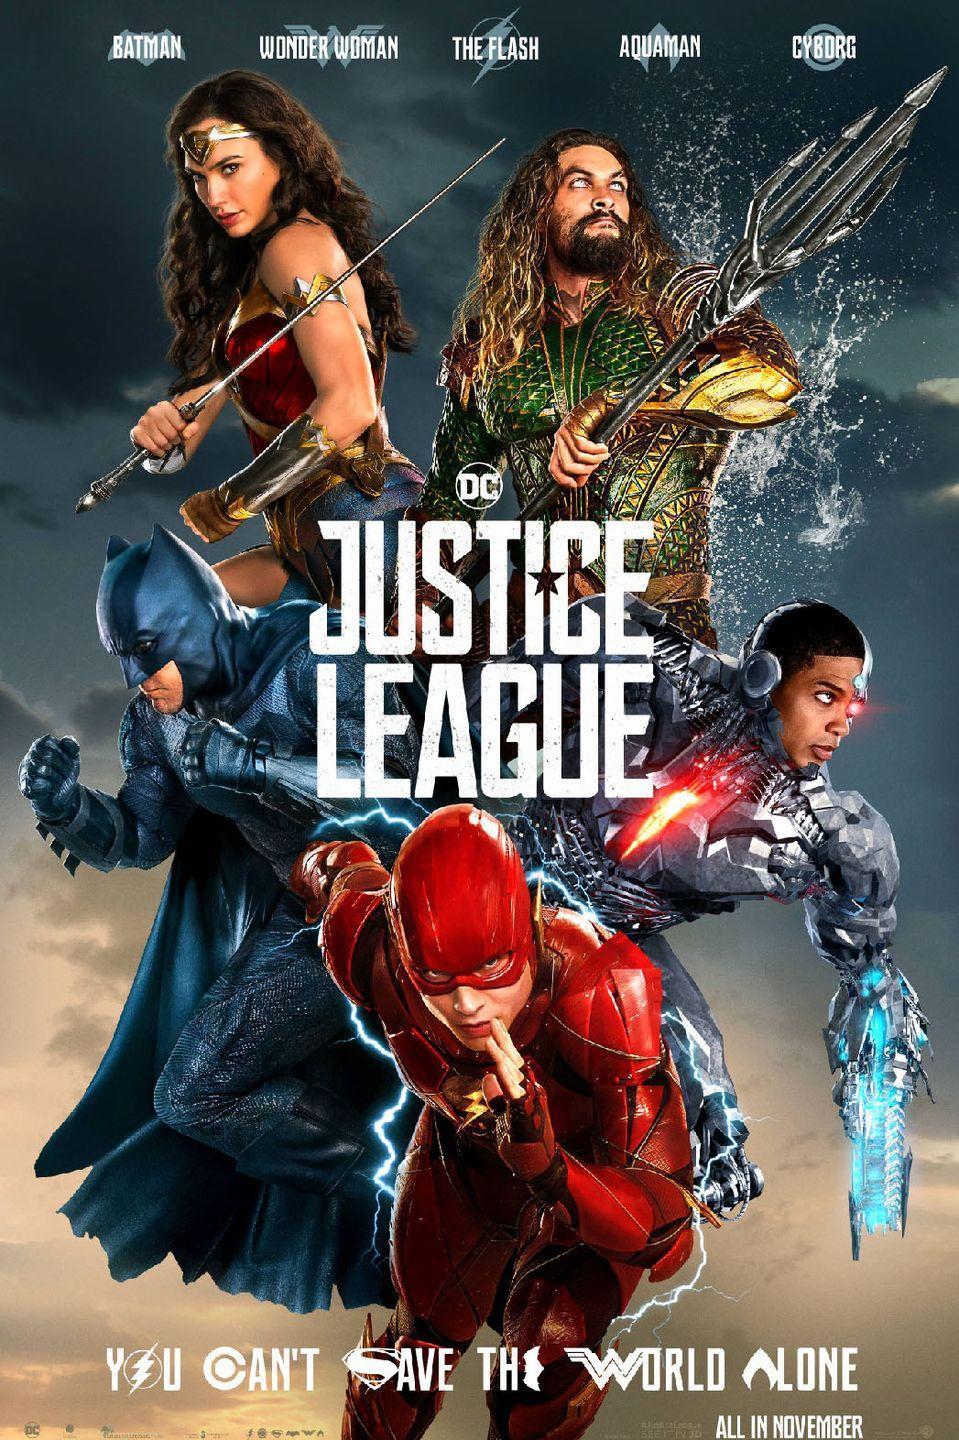 "<p>Despite the consistent crap that Warner Bros. and DC produced for the better part of the 2010s, I wanted<em> Justice League</em> to be good. After the triumph that was <em>Wonder Woman</em>, the DC universe was primed to make a huge comeback with <em>Justice League</em>. Instead, the only joy to be had in this film is to watch Gal Gadot's Wonder Woman constantly put Ben Affleck's Batman in his place. It also, to its credit, included the most 2017 exchange imaginable. In one scene, The Flash asks Bruce Wayne a question that we've all been wondering for decades: What, exactly, are Batman's superpowers anyway? Wayne, with the utmost sincerity, replies: ""I'm rich.""</p>"